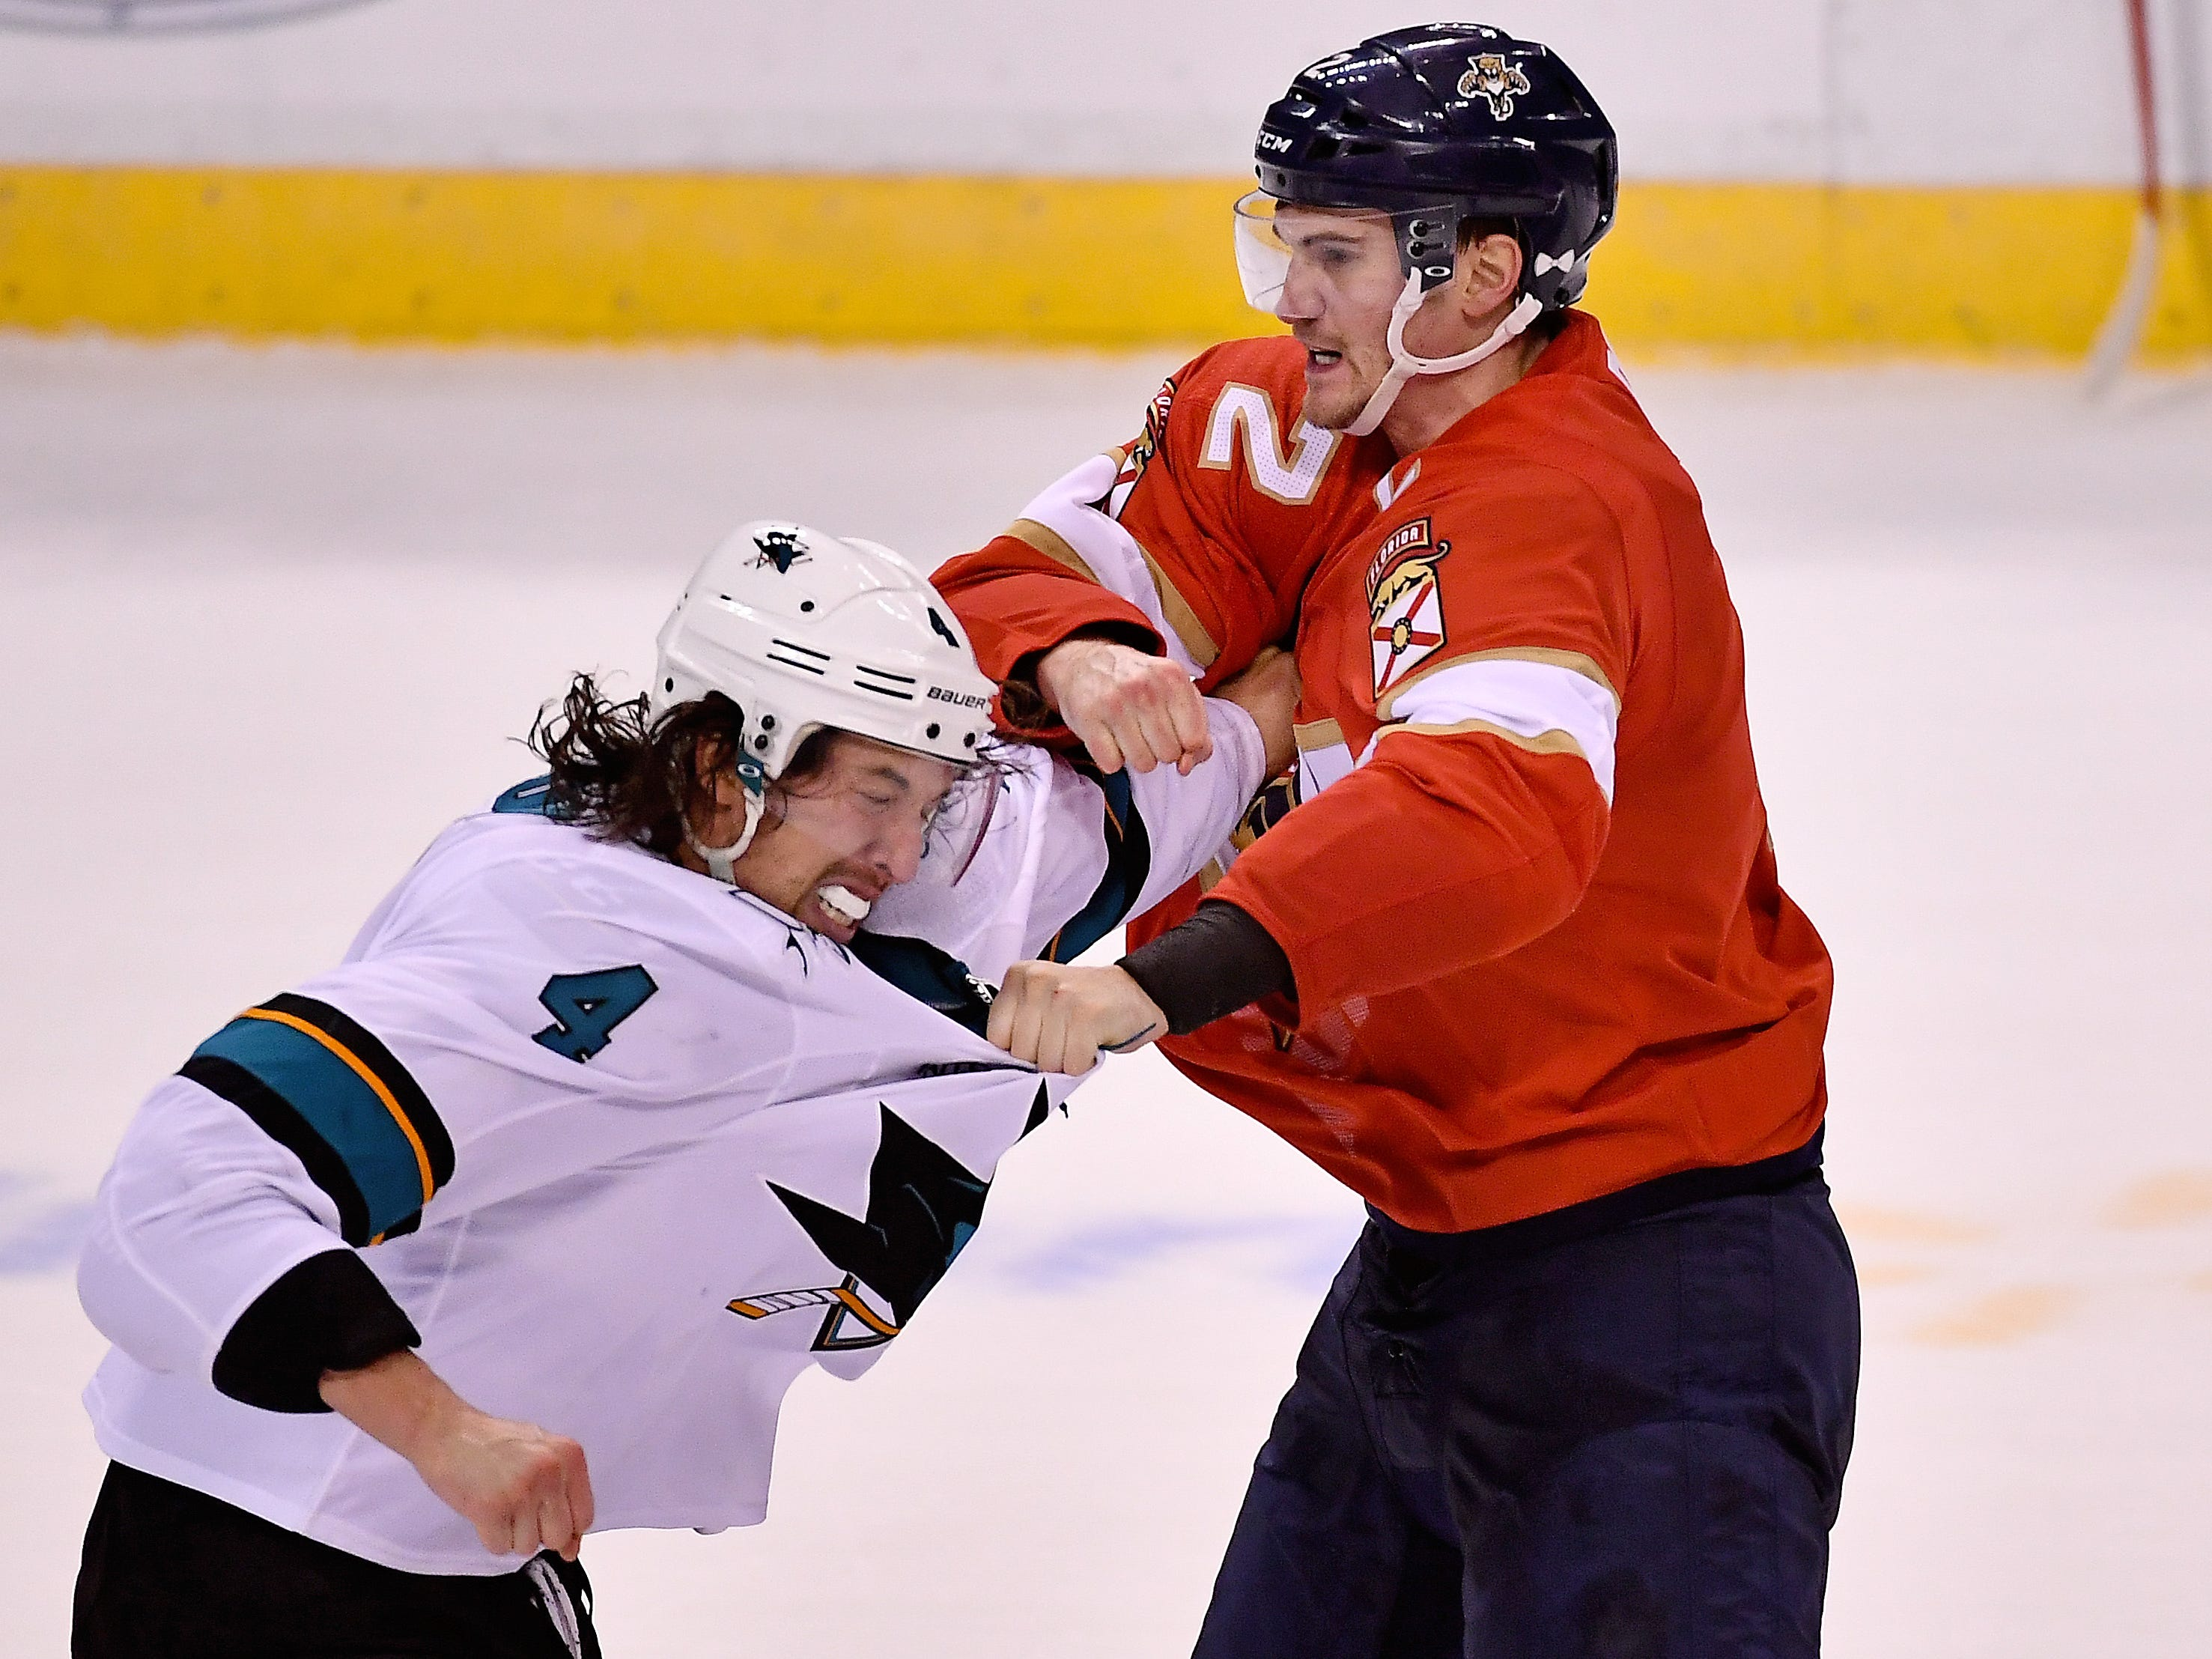 Jan. 21: San Jose Sharks' Brenden Dillon vs. Florida Panthers' Josh Brown.